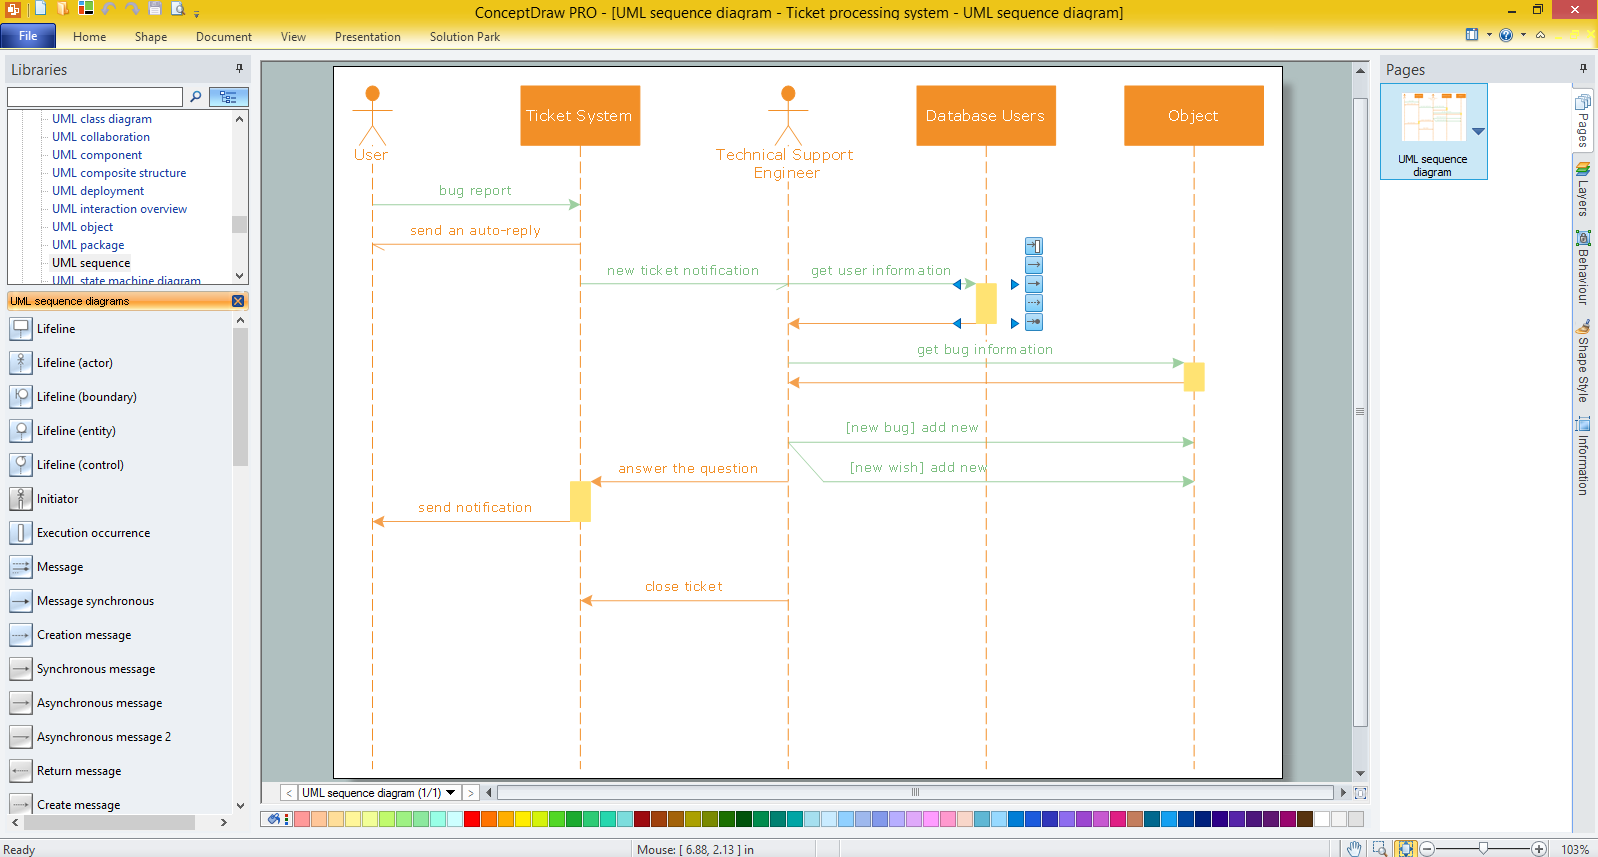 uml sequence diagram for tax payment process this sequence diagram example is brought to you by the uml tool provided by visual paradigm https - Sequence Diagram Free Tool